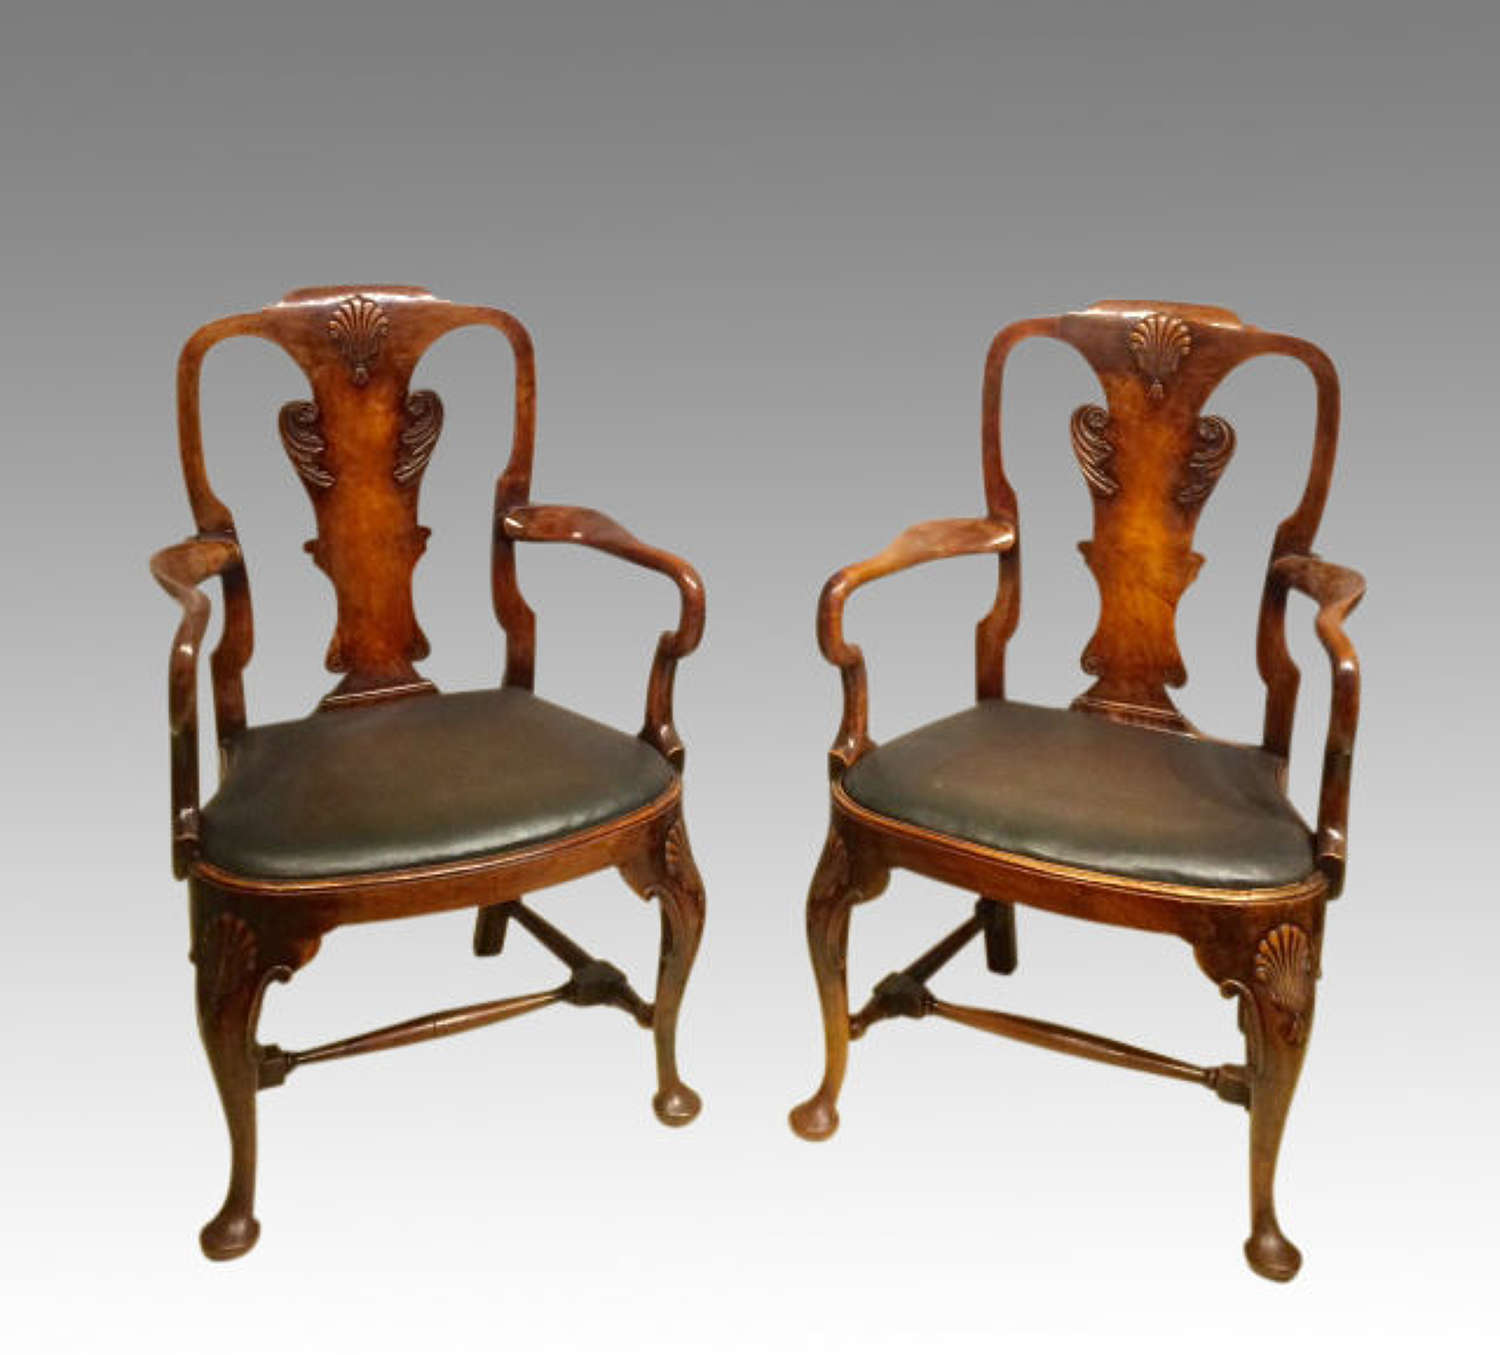 Pair of antique walnut armchairs in the Queen Anne style.